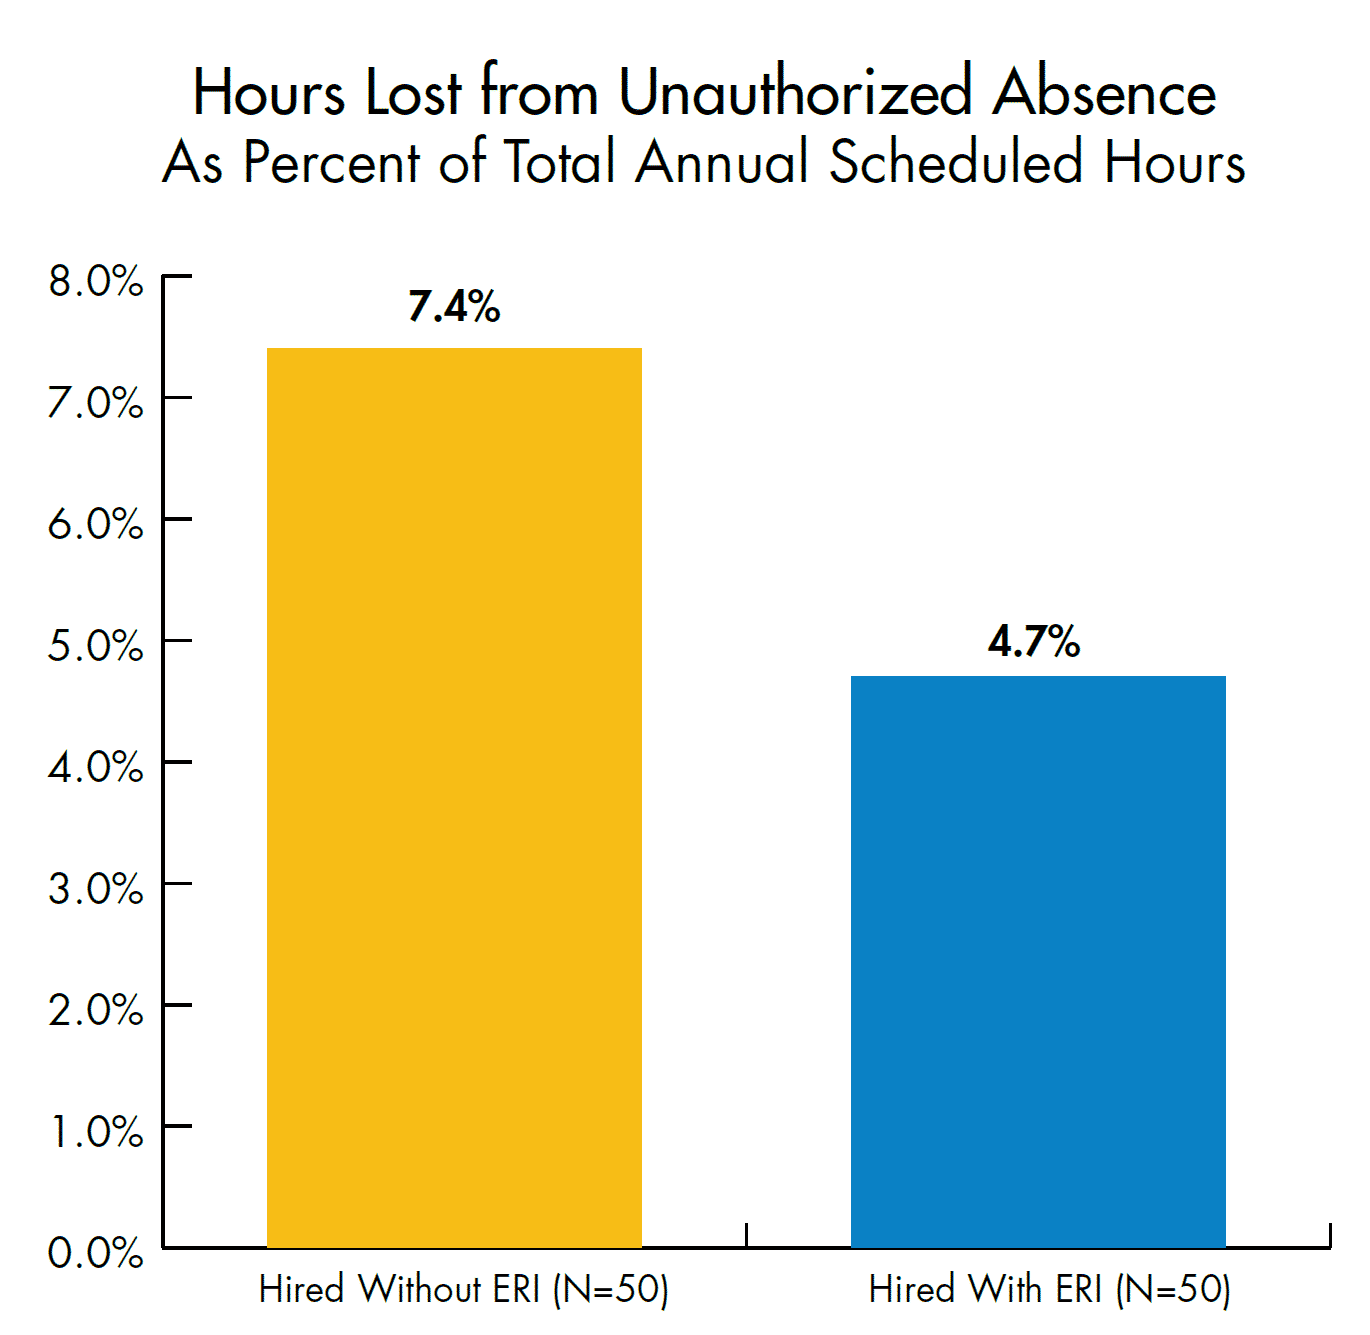 Hours lost unauthorized absences in the workplace